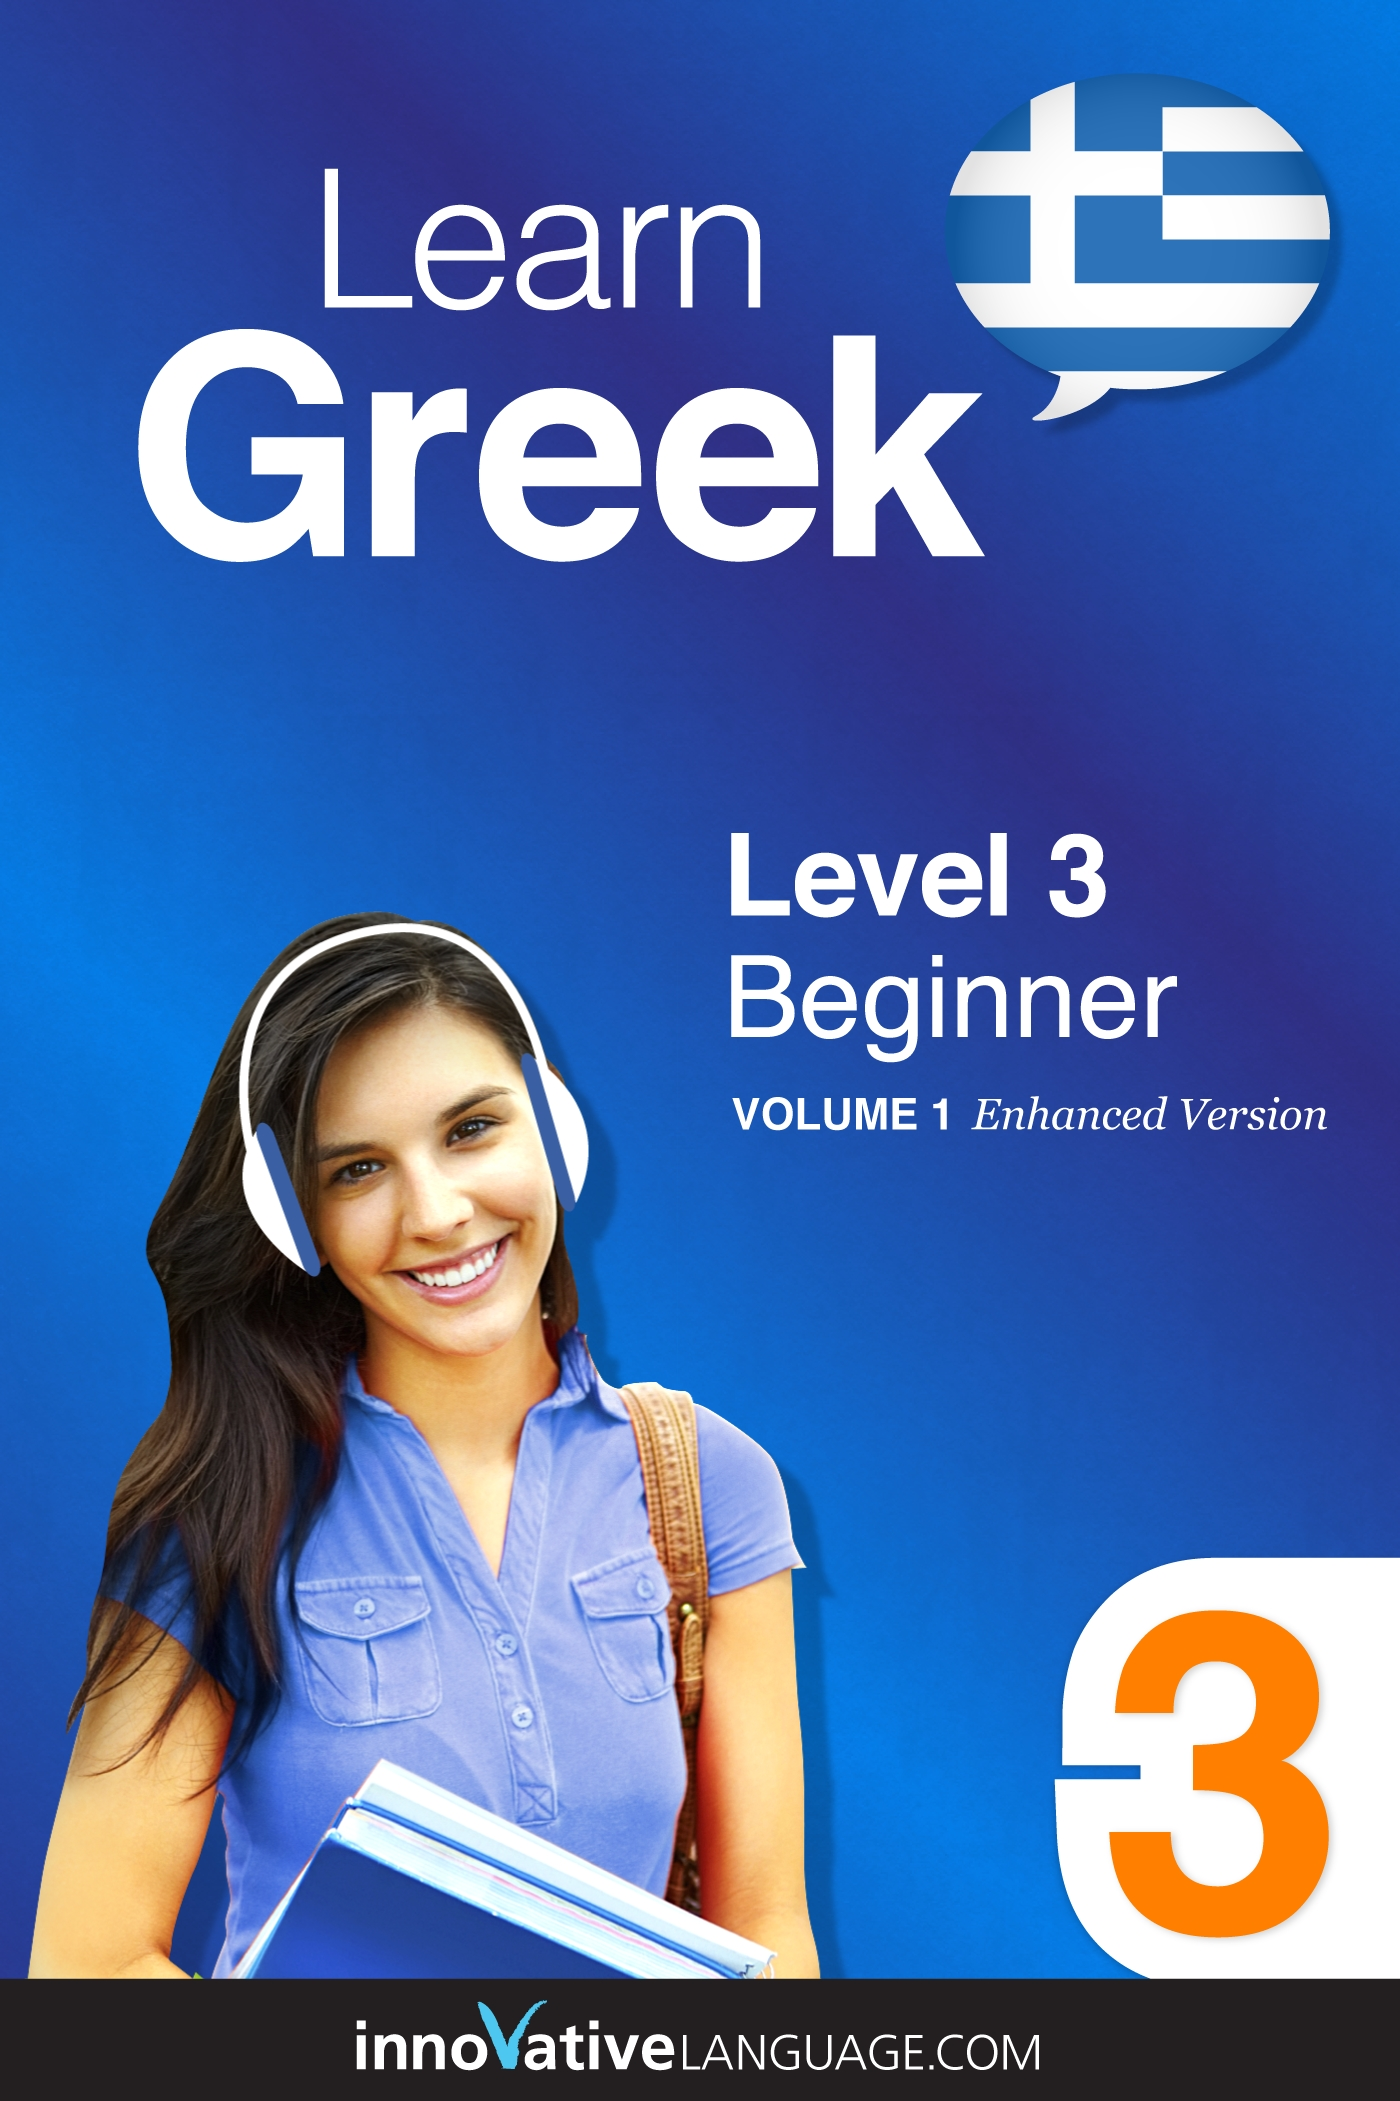 [eBook] Learn Greek - Level 3: Beginner